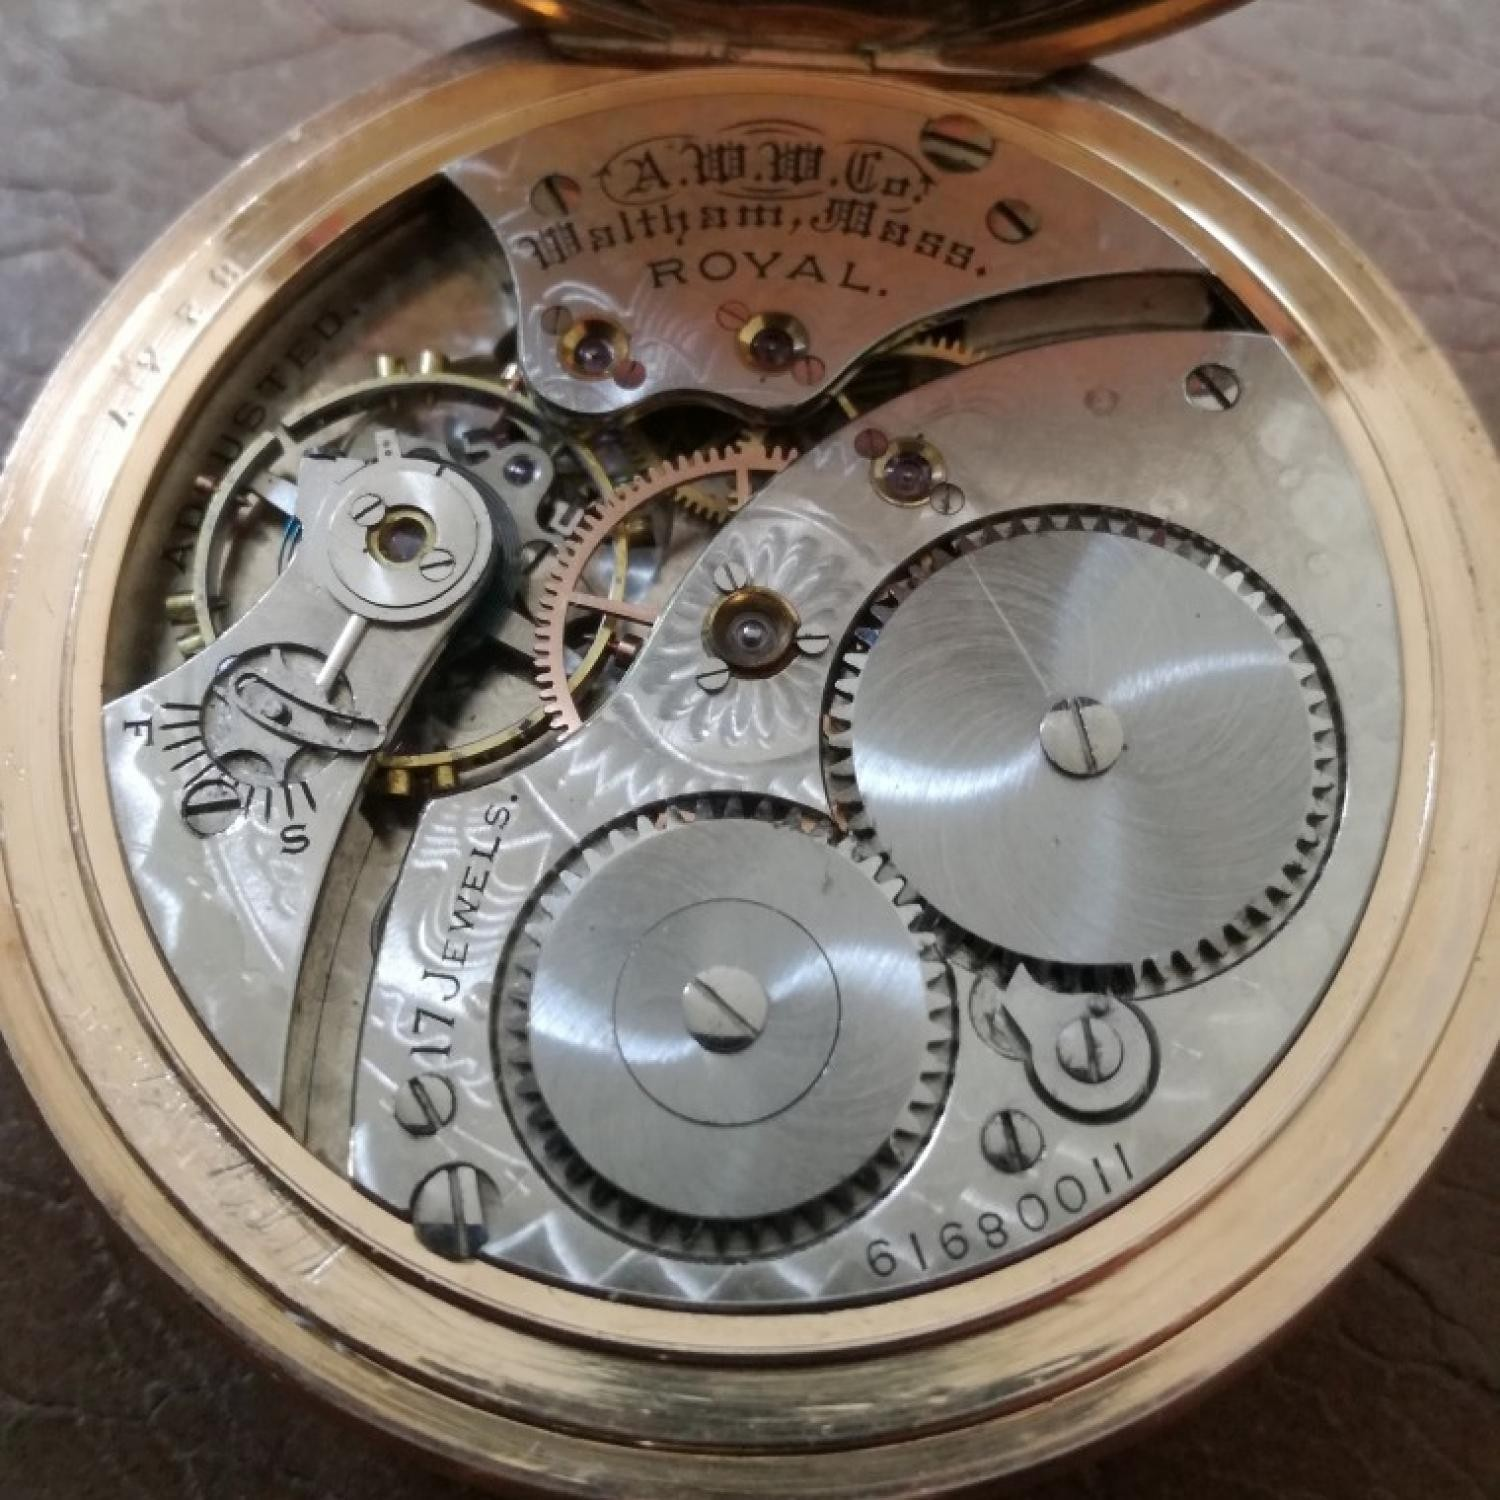 Image of Waltham Royal #11008919 Movement